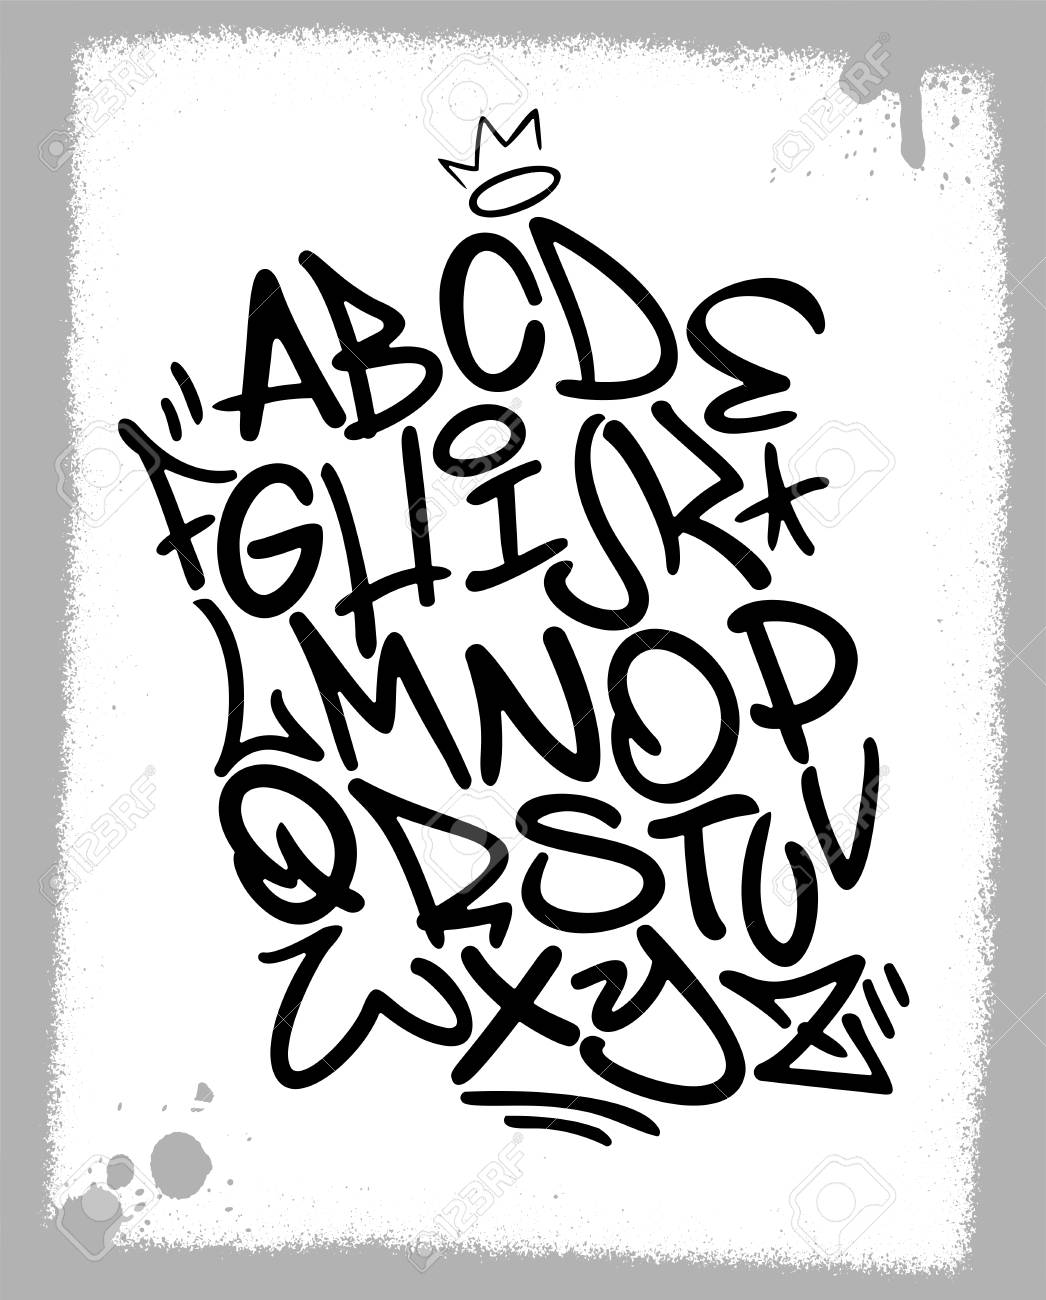 Handwritten Graffiti Font Alphabet Artistic Hip Hop Typography Collection Custom Vector Calligraphy Set